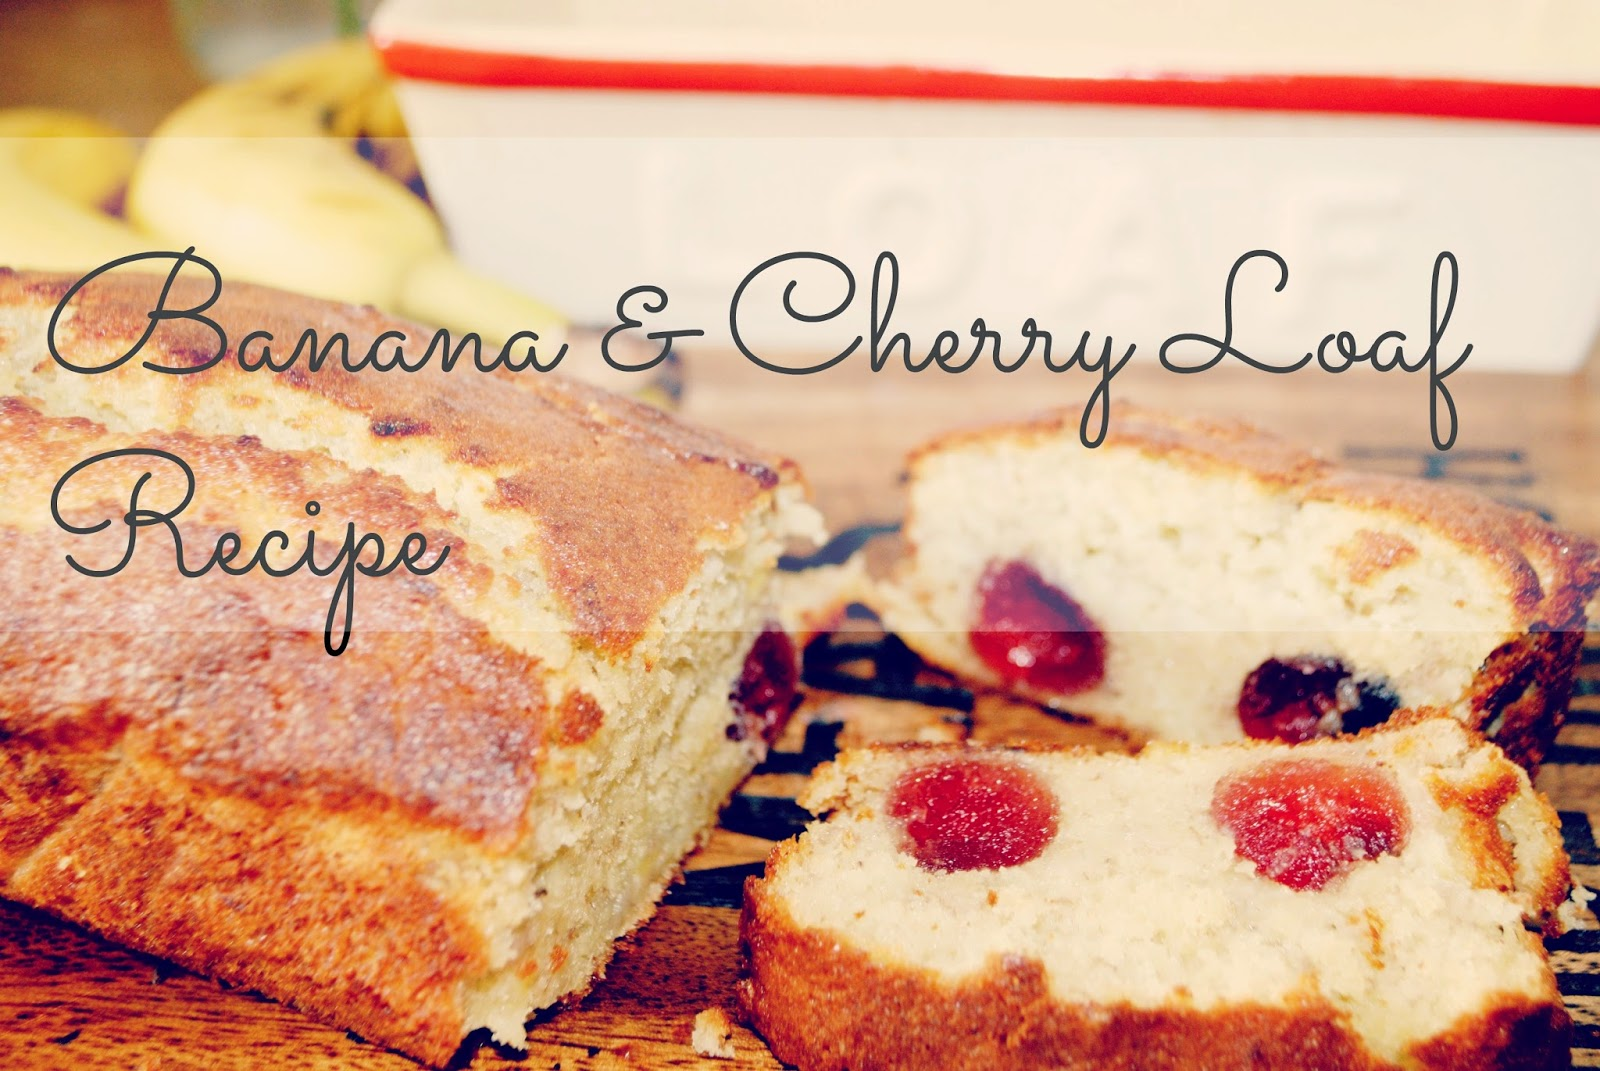 Banana and cherry loaf recipe